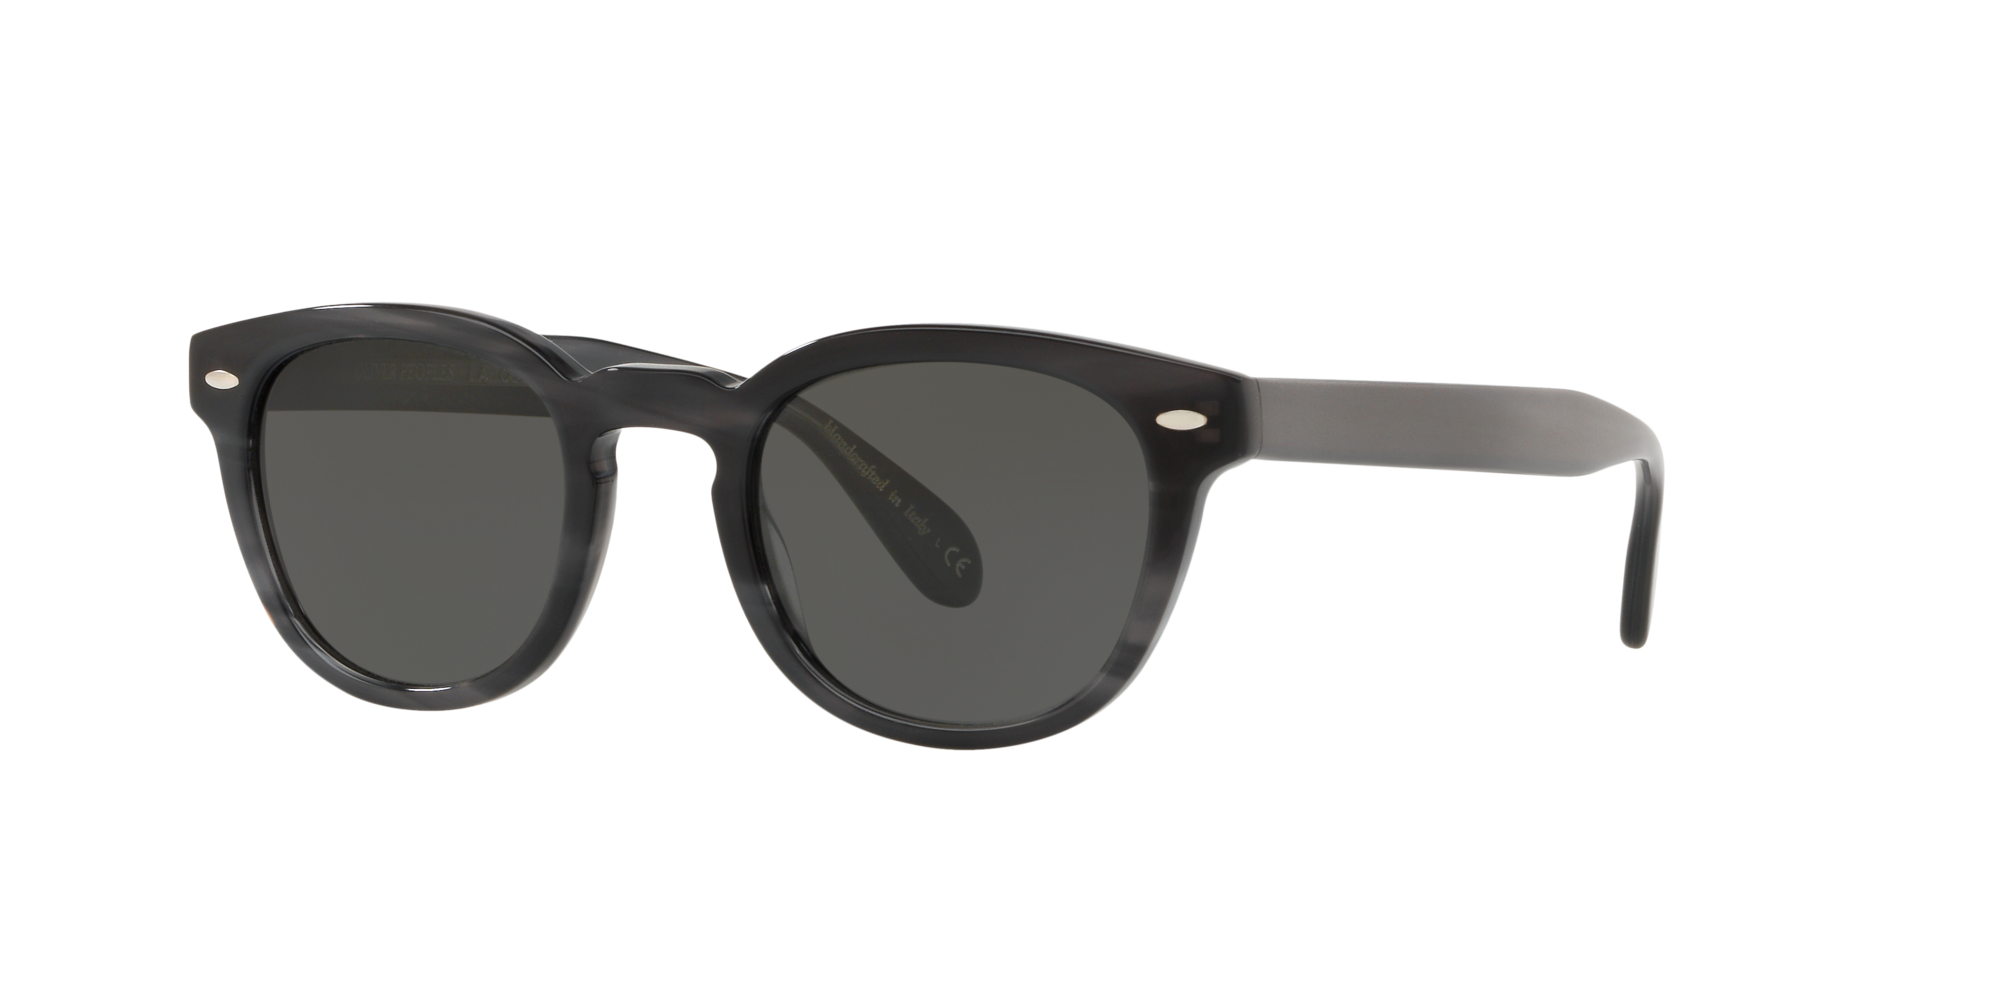 Oliver Peoples OV5036S Sheldrake Sun Tortoise Frame Sunglasses with Grey-Black Lenses